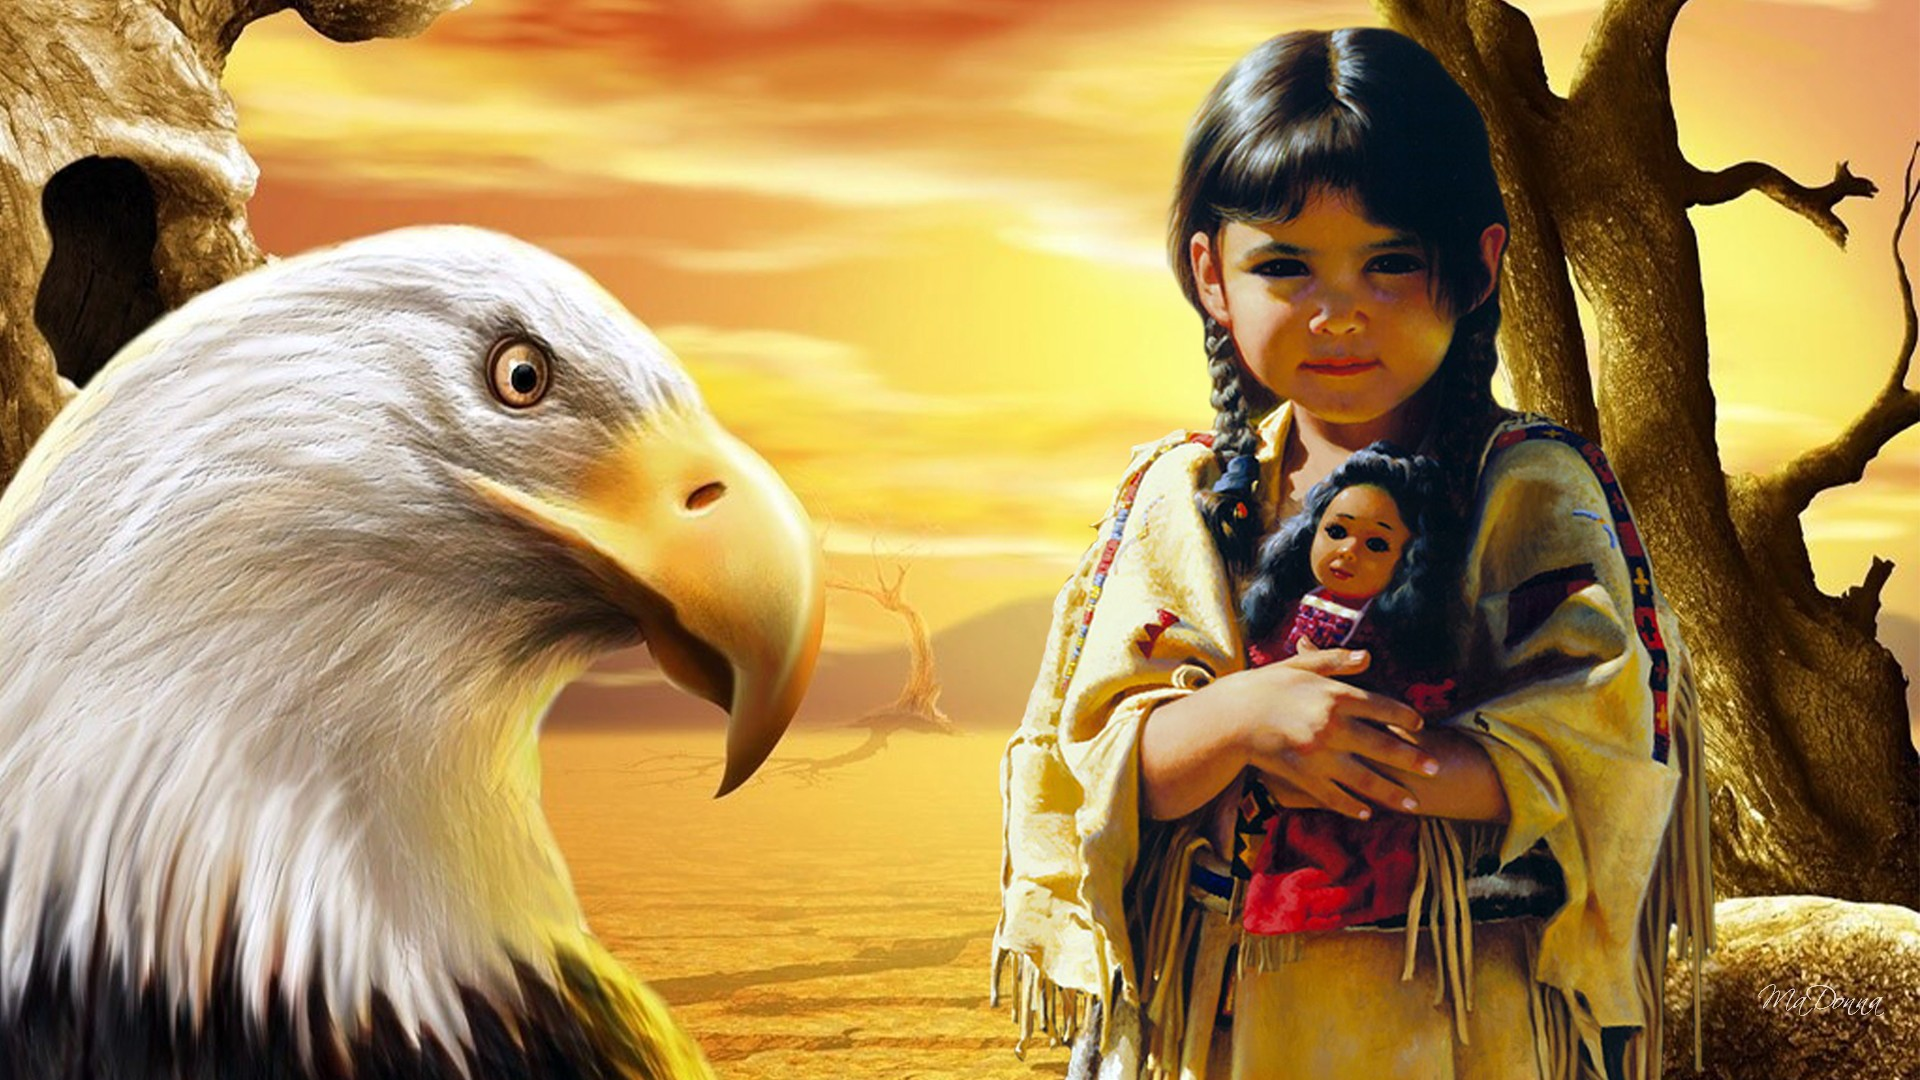 free online native american dating sites